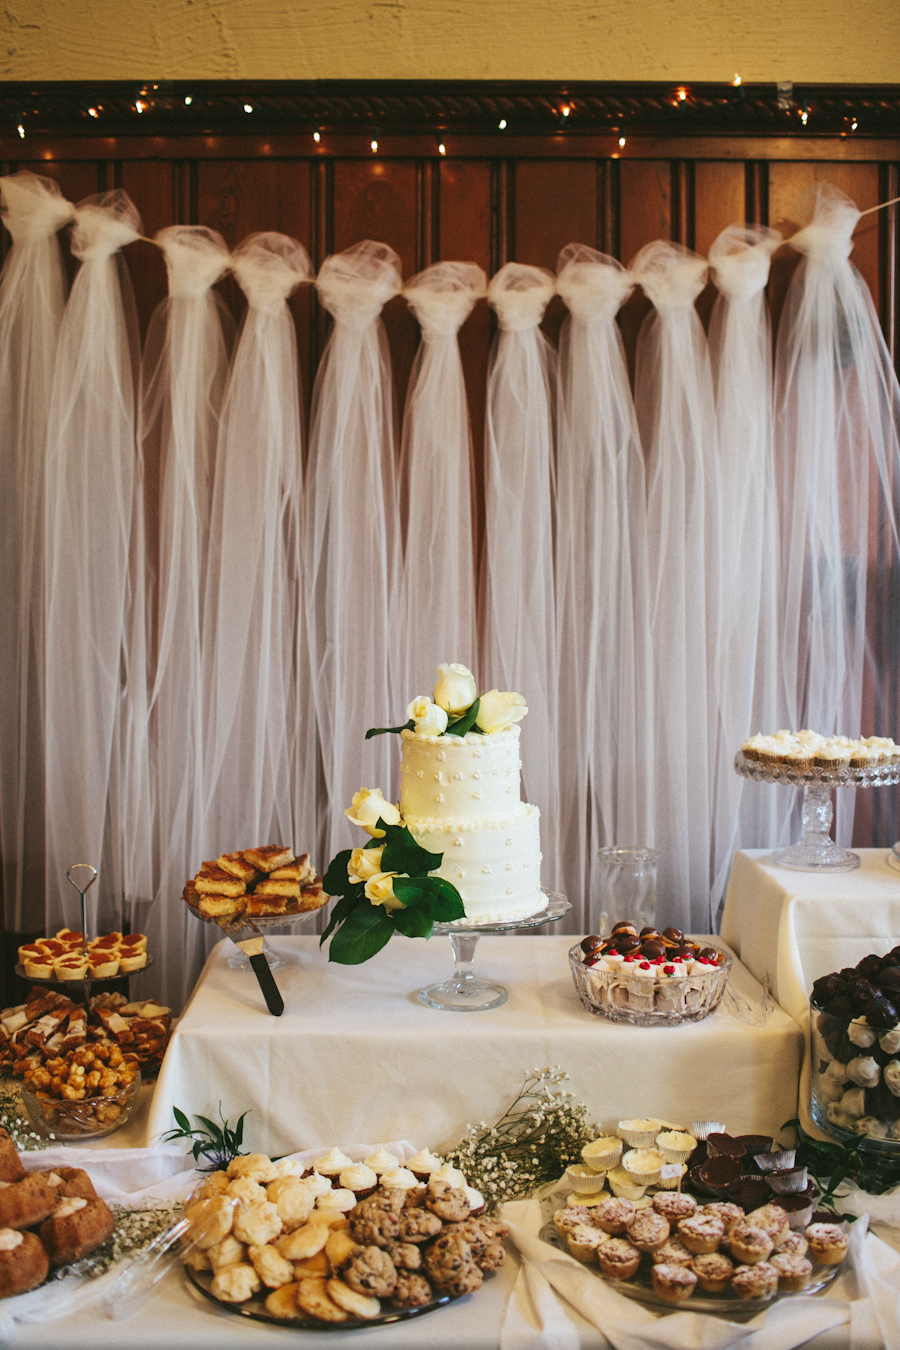 Long swaths of white tool strung as tassels across a white cord serve as backdrop for a dessert table piled with cookies and other treats with a tiered white cake as an idea for bridal shower decorations